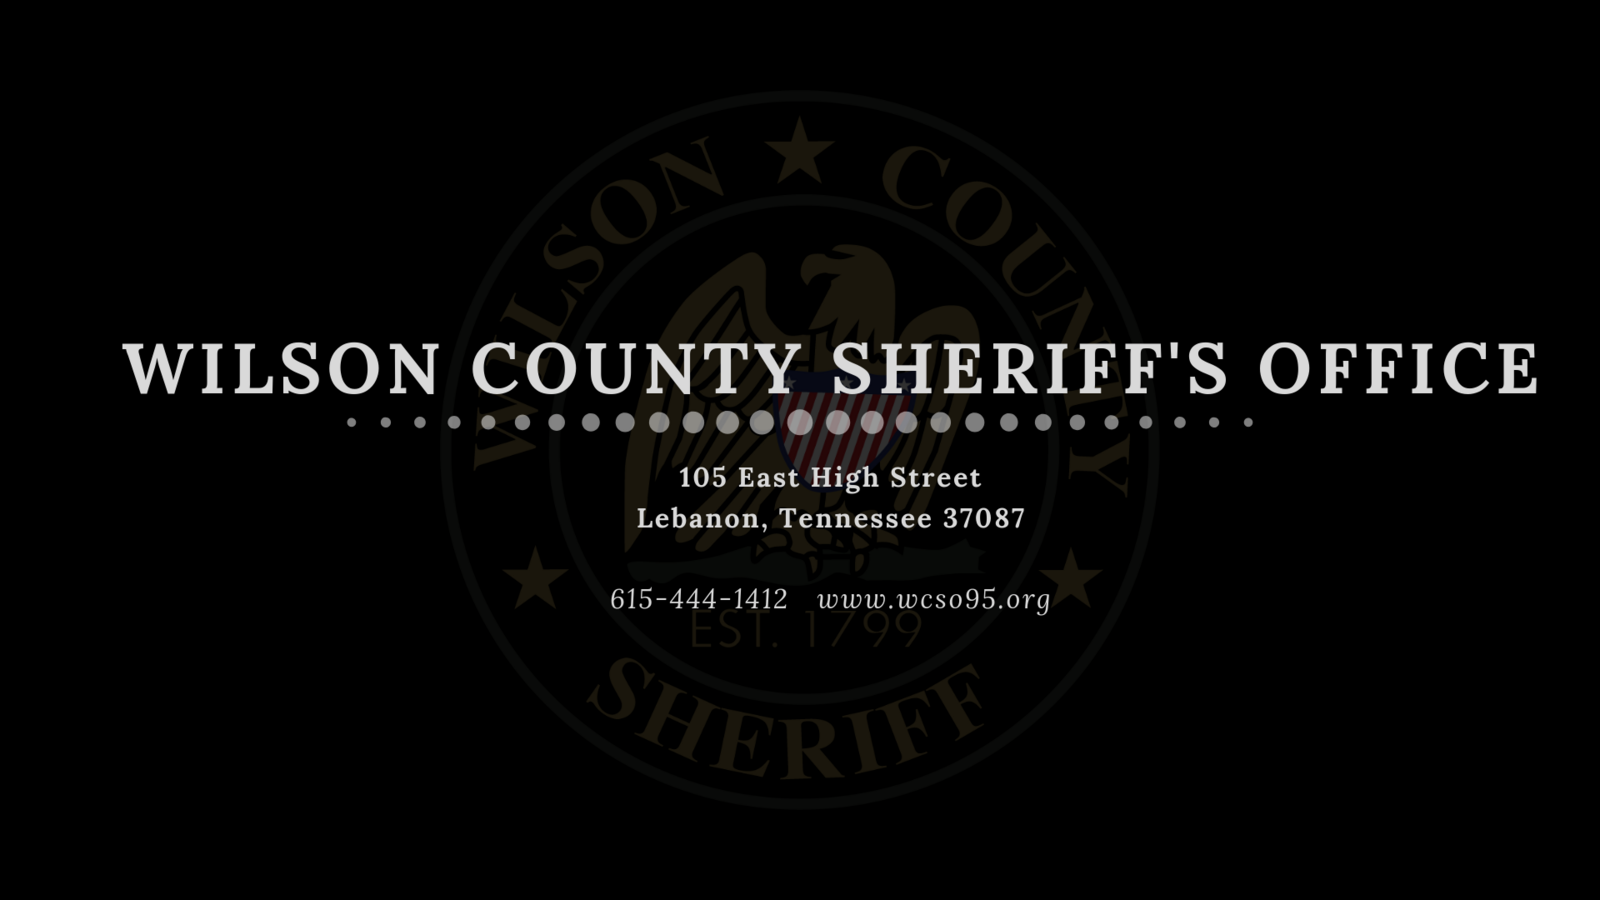 Facebook: WCSO Criminal Investigations (Wilson County